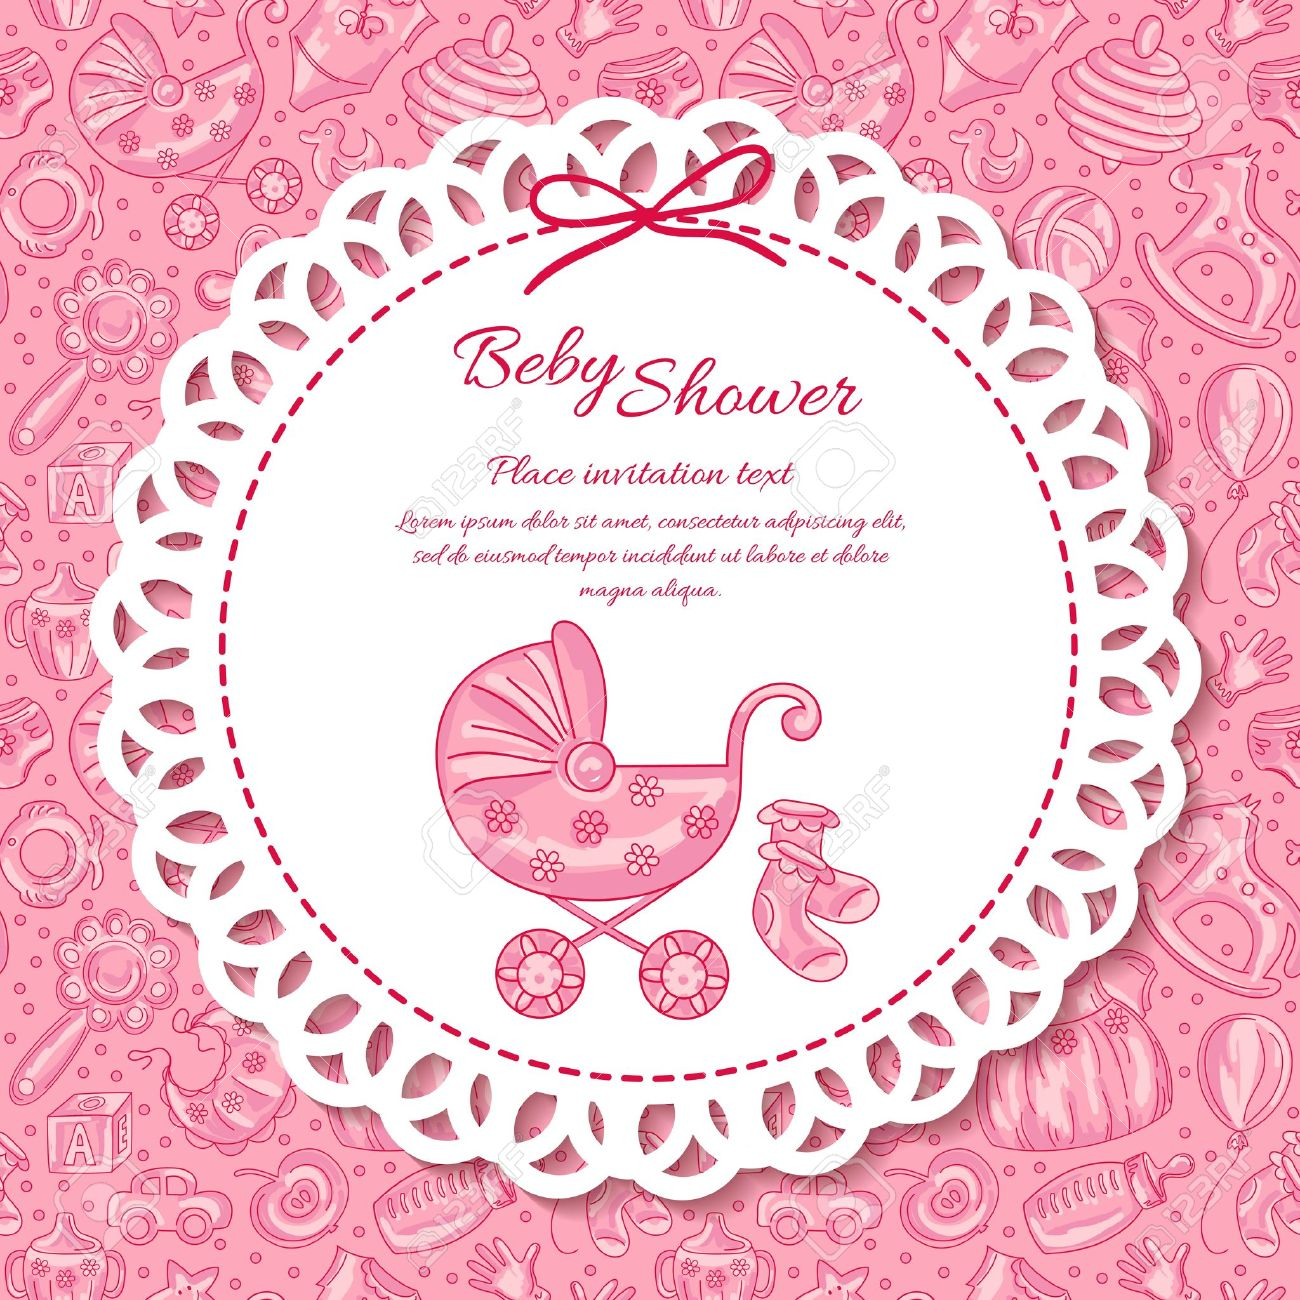 Full Size of Baby Shower:stylish Baby Shower Wishes Picture Inspirations Baby Shower Wishes Baby Shower Greeting Card For Baby Seamless Pattern Baby